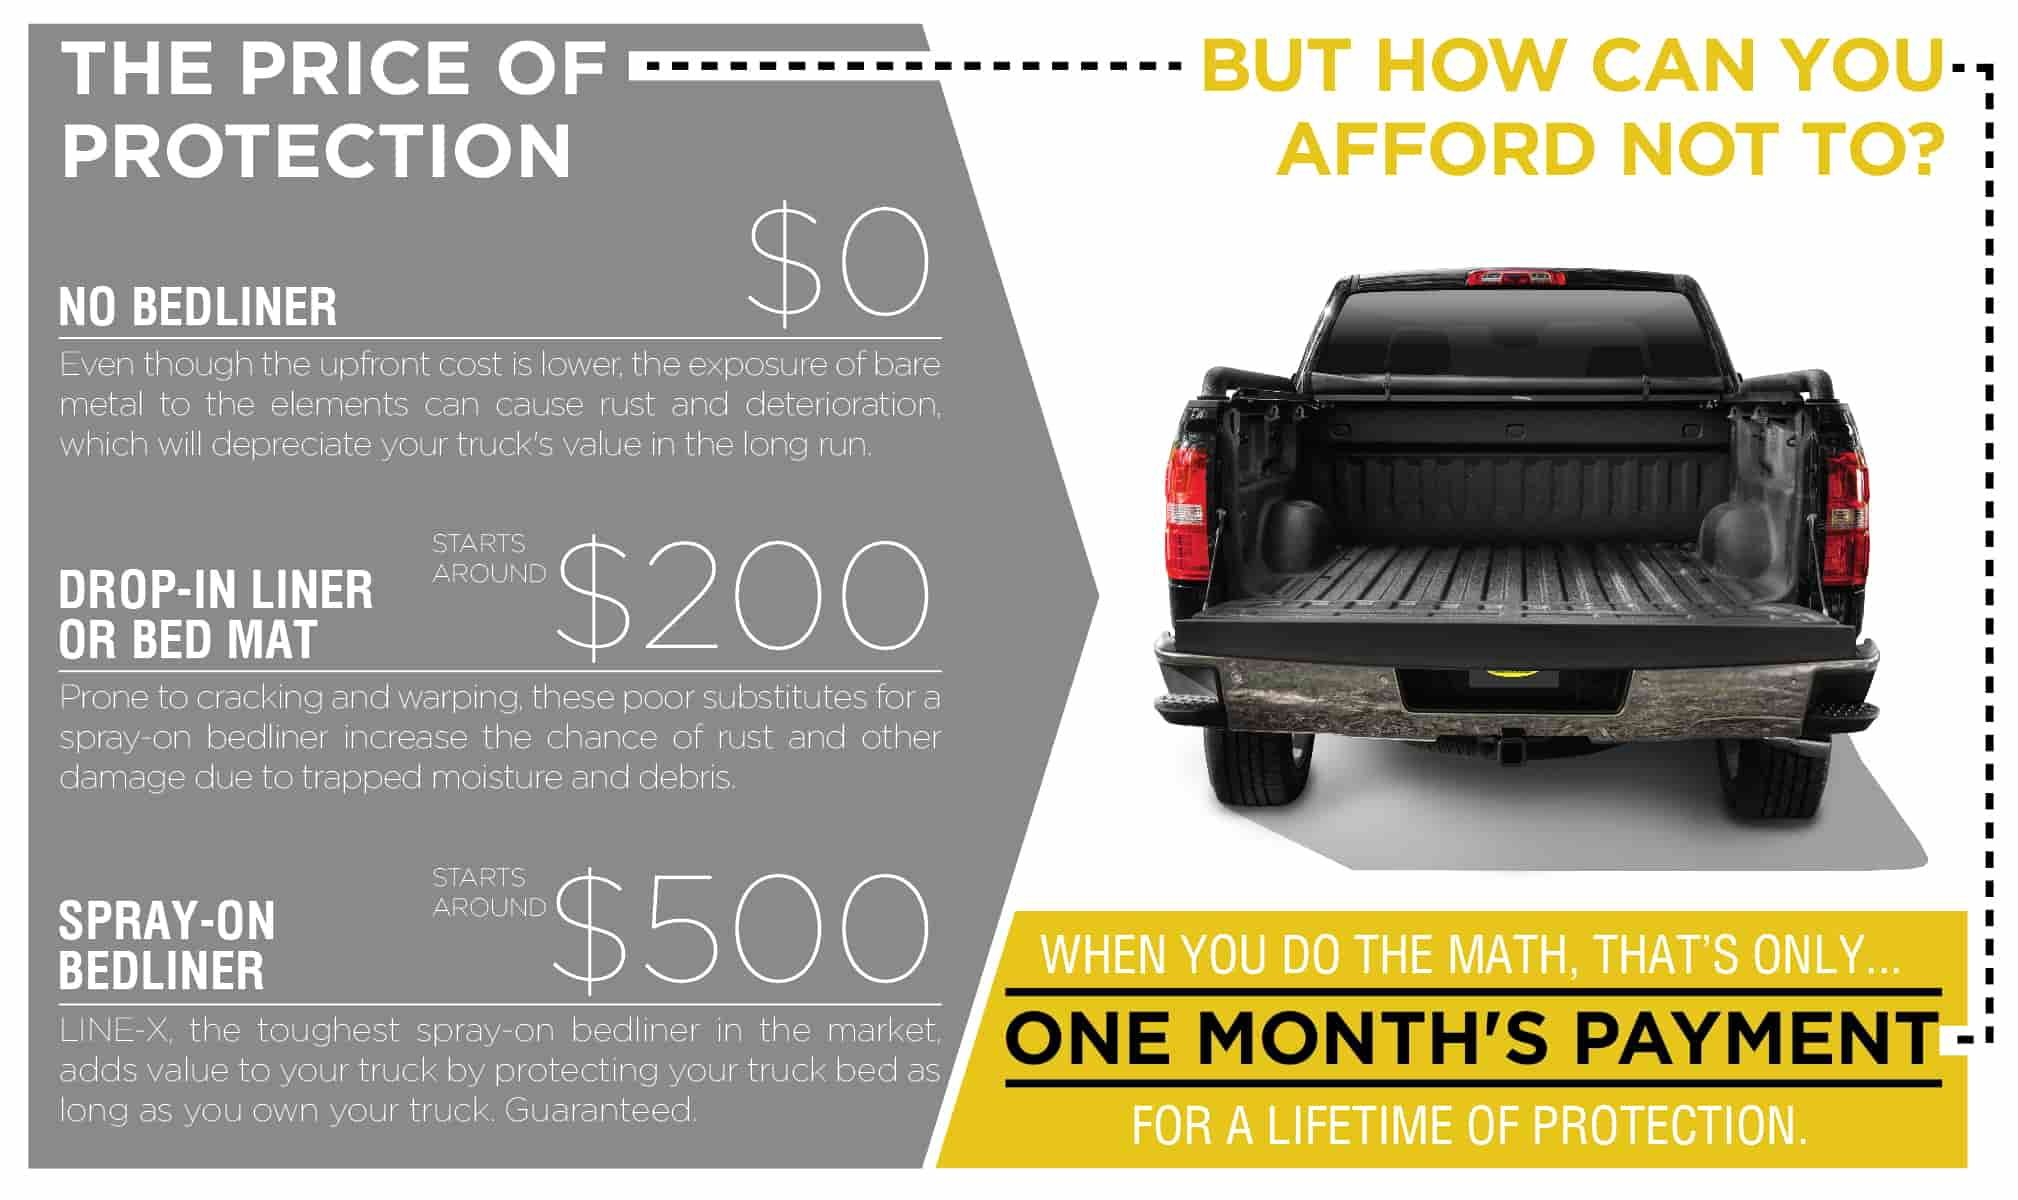 ADDING VALUE AND VIRTUAL INDESTRUCTIBILITY TO YOUR TRUCK COSTS